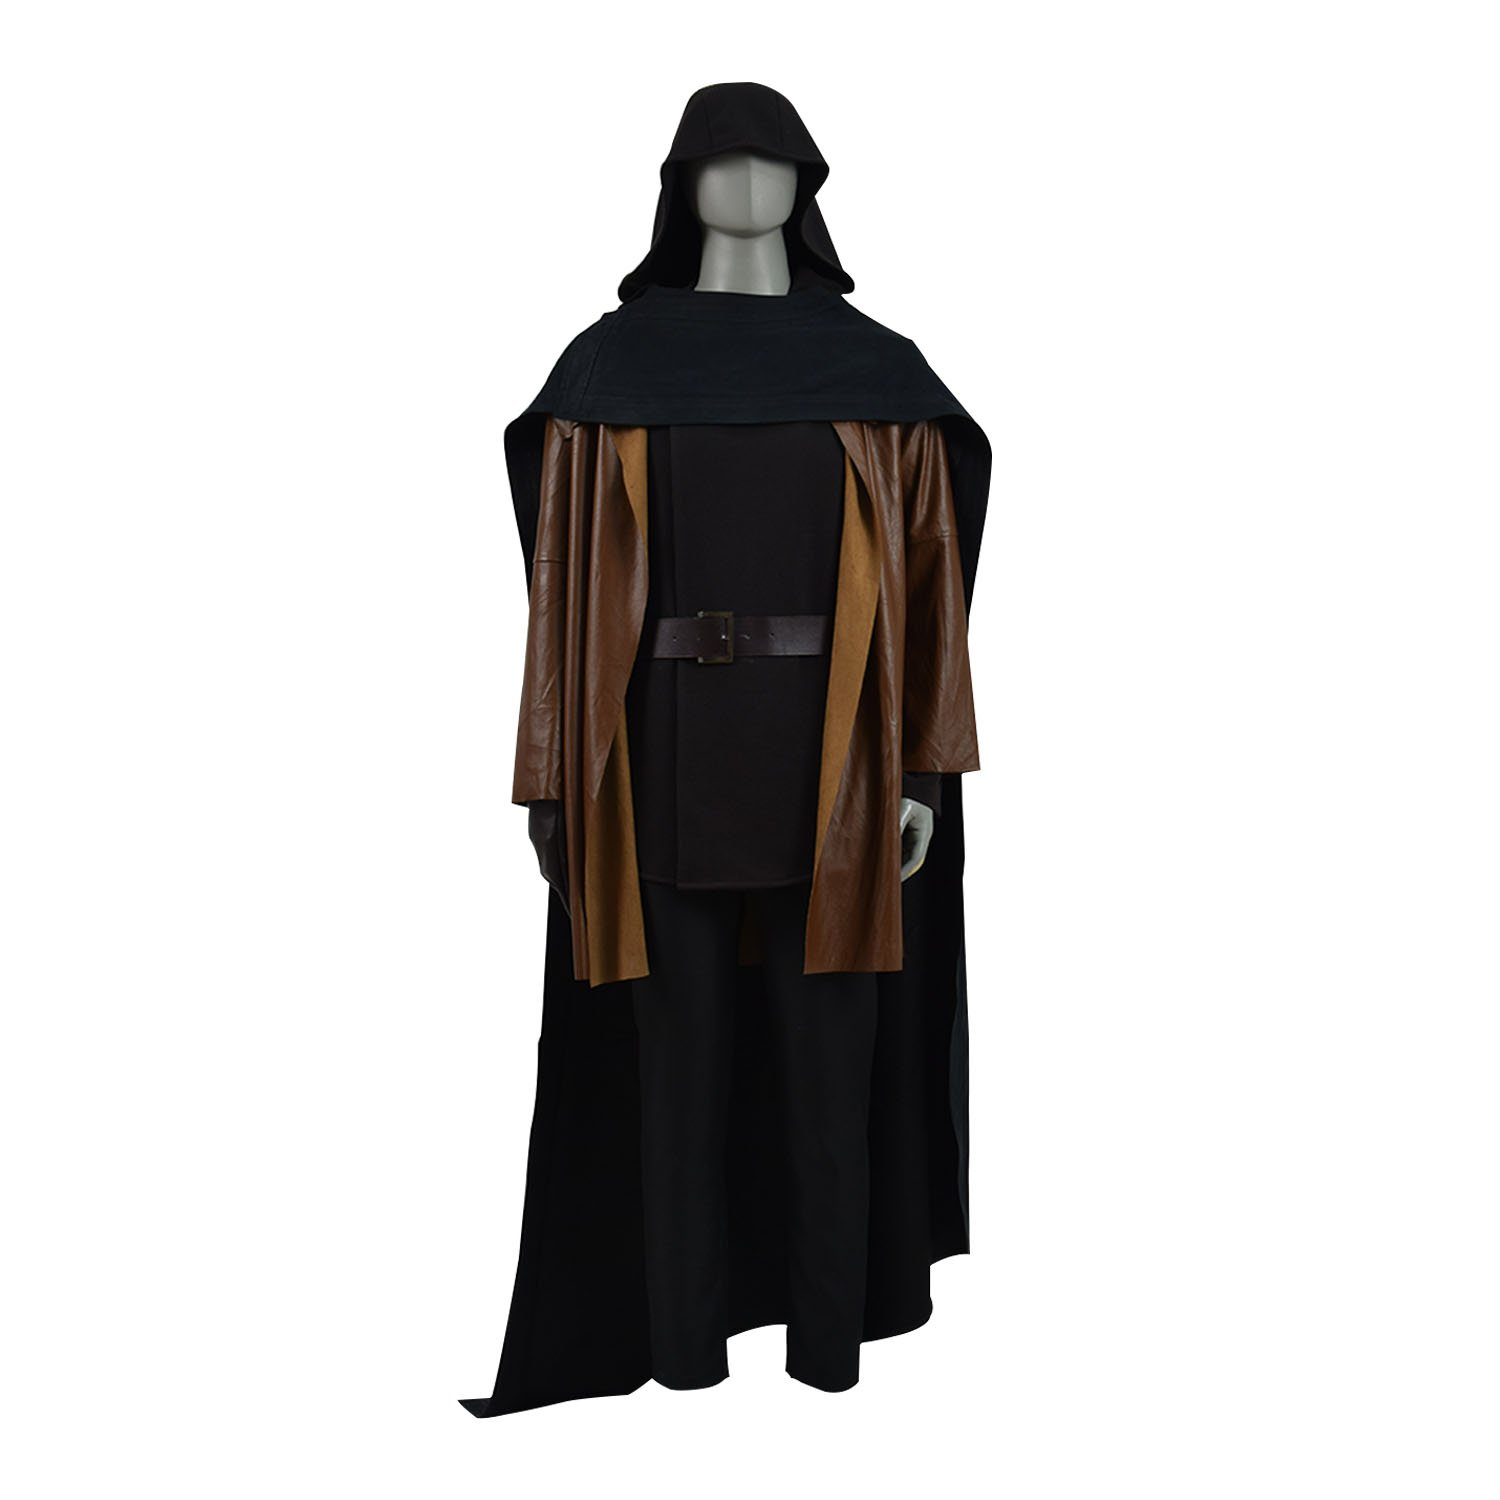 TISEA Men's Skywalker Jedi Luke Cosplay Costume Halloween Outfit Ver.2 (XXL, Full Set 2) by TISEA